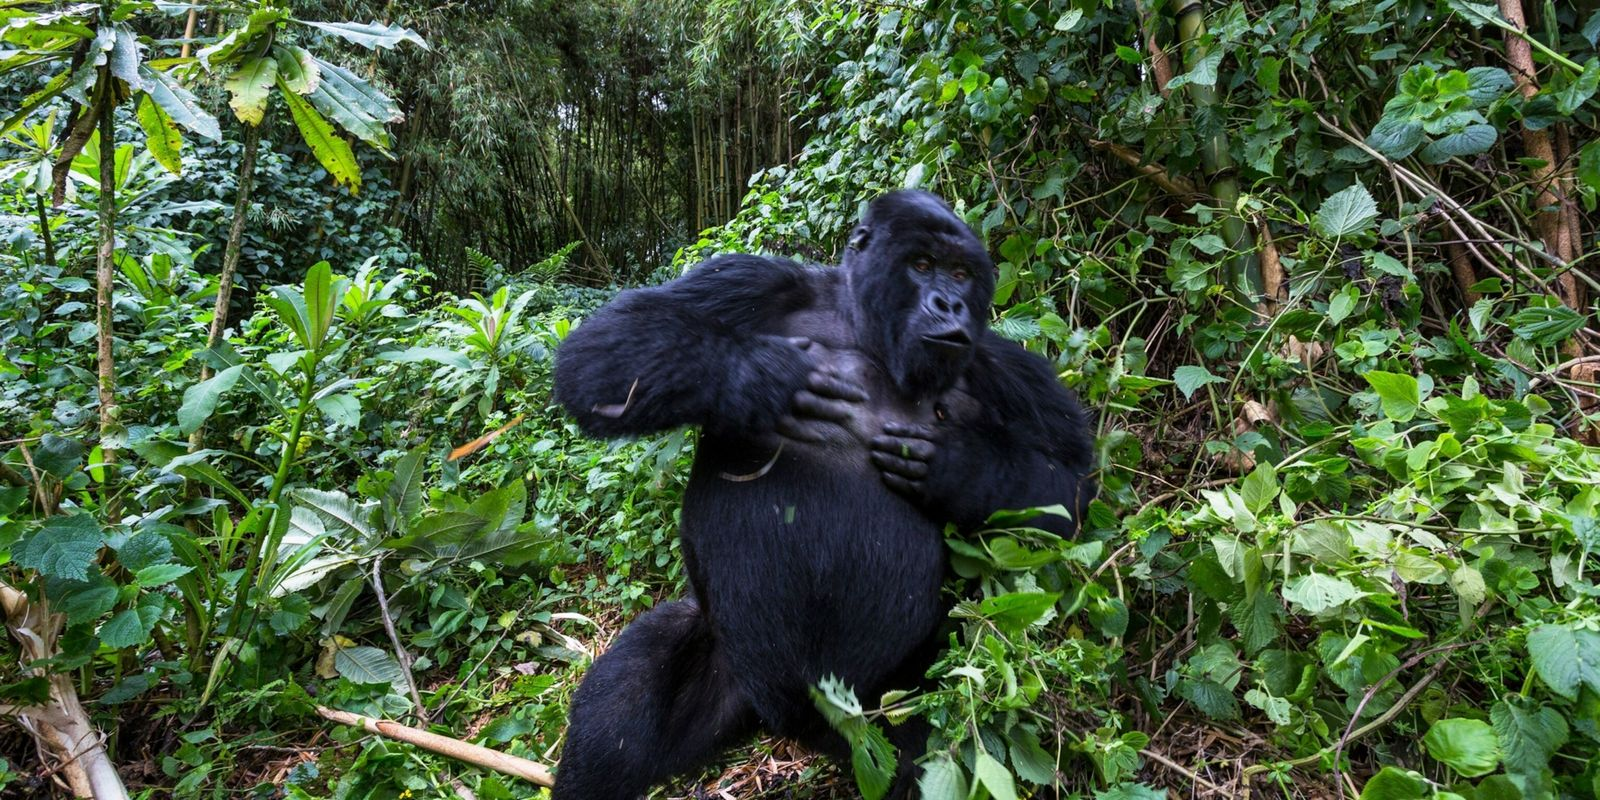 Why do male gorillas beat their chests? New study offers intriguing evidence